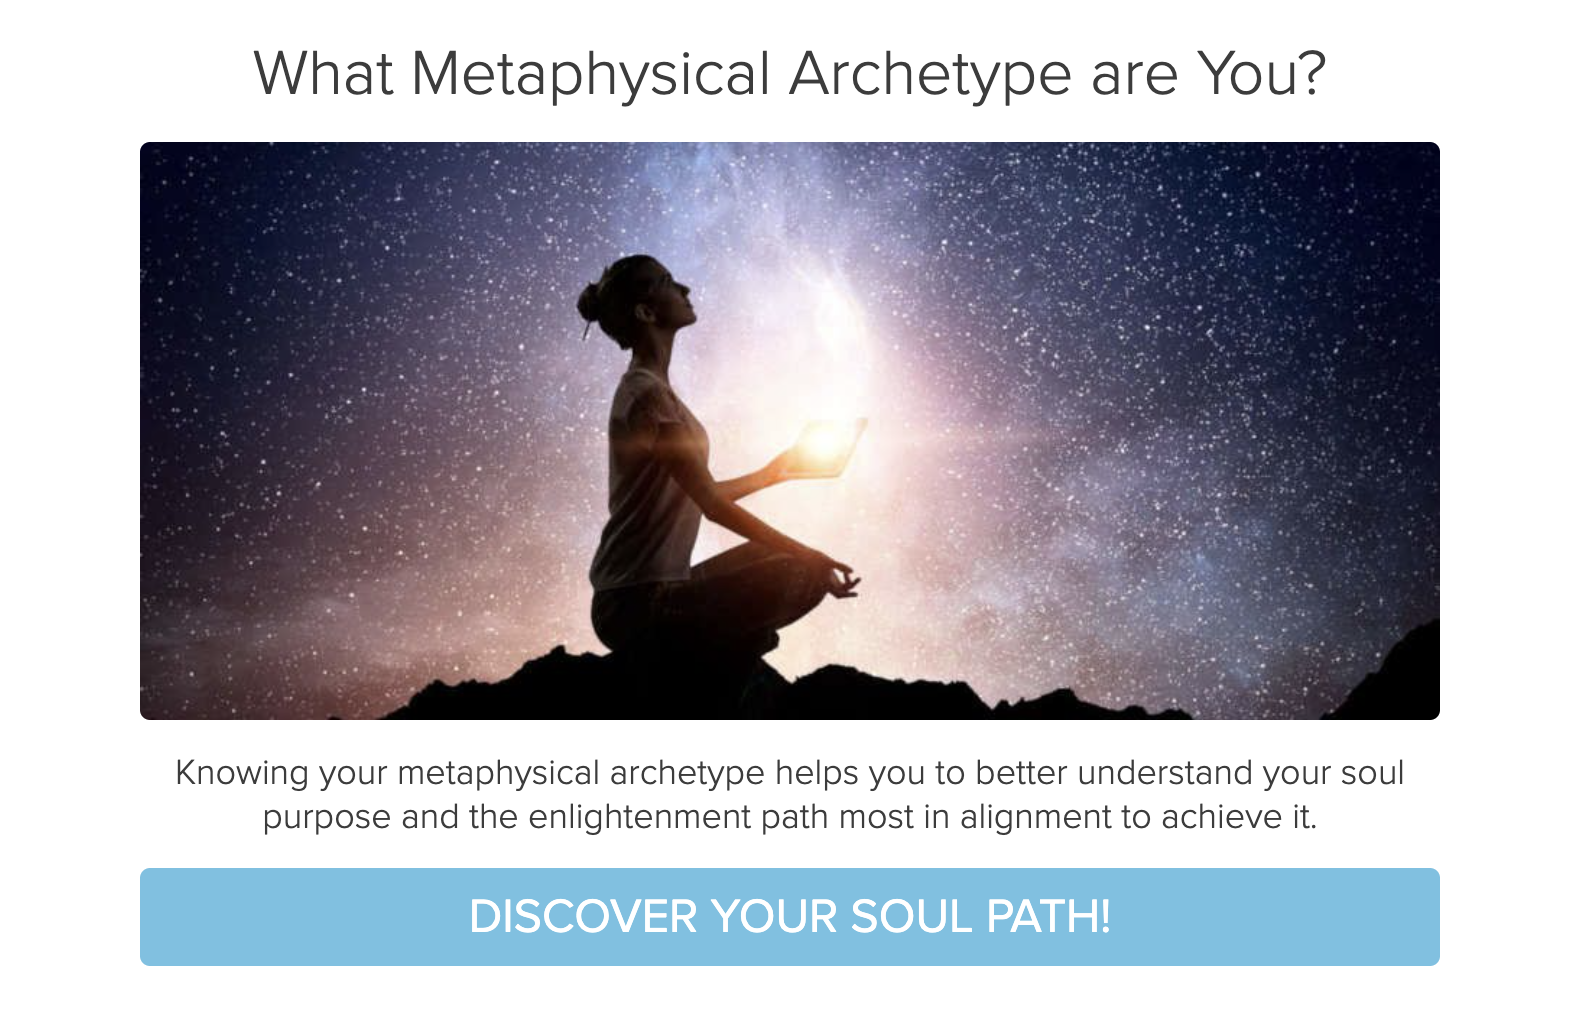 What metaphysical archetype are you